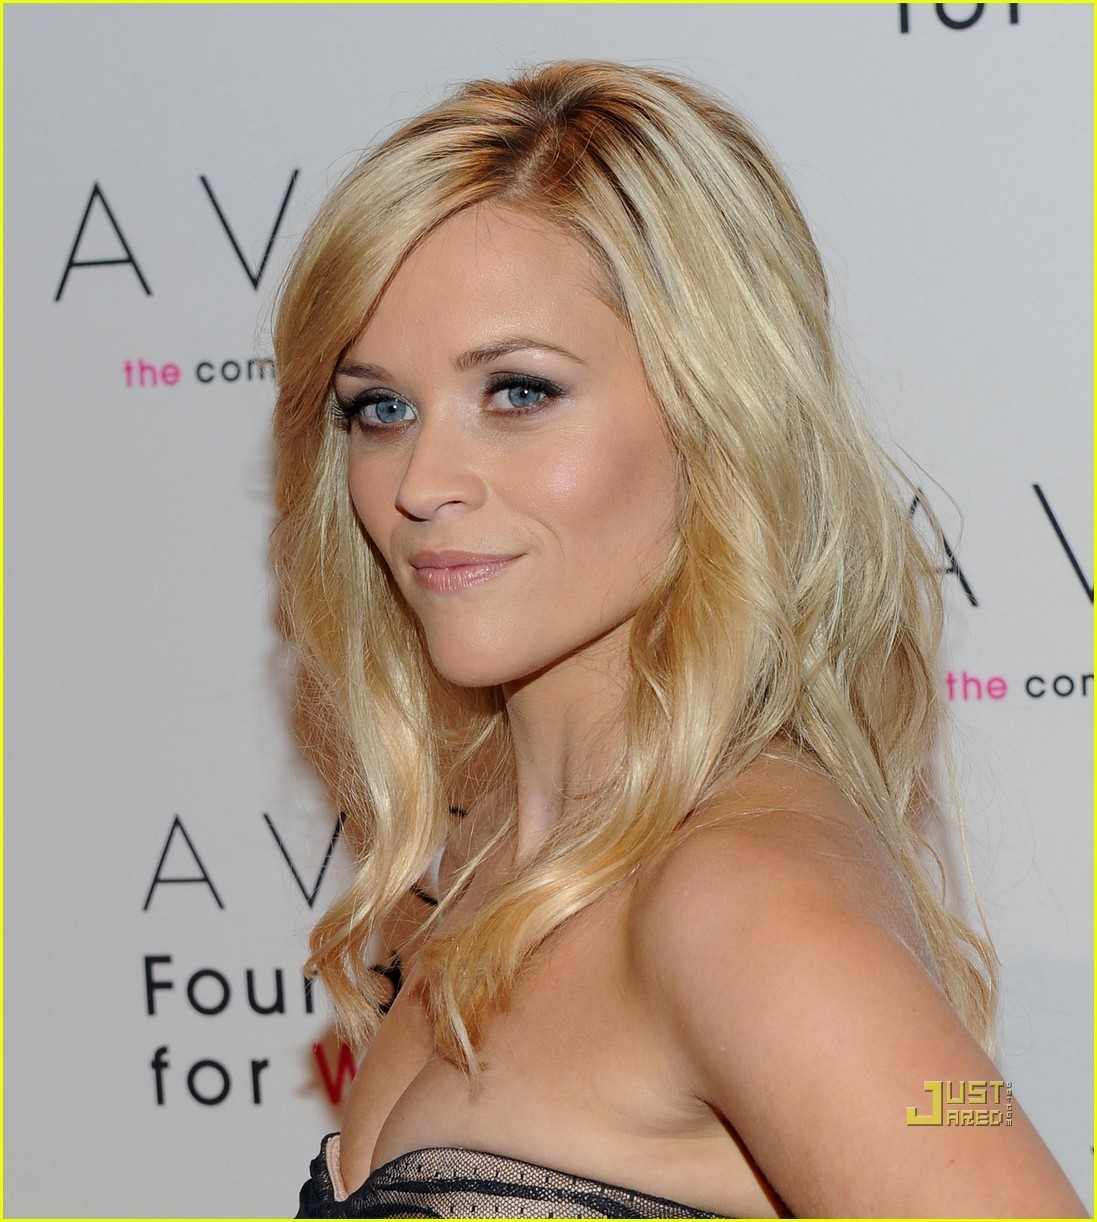 Reese Witherspoon - Photo Actress